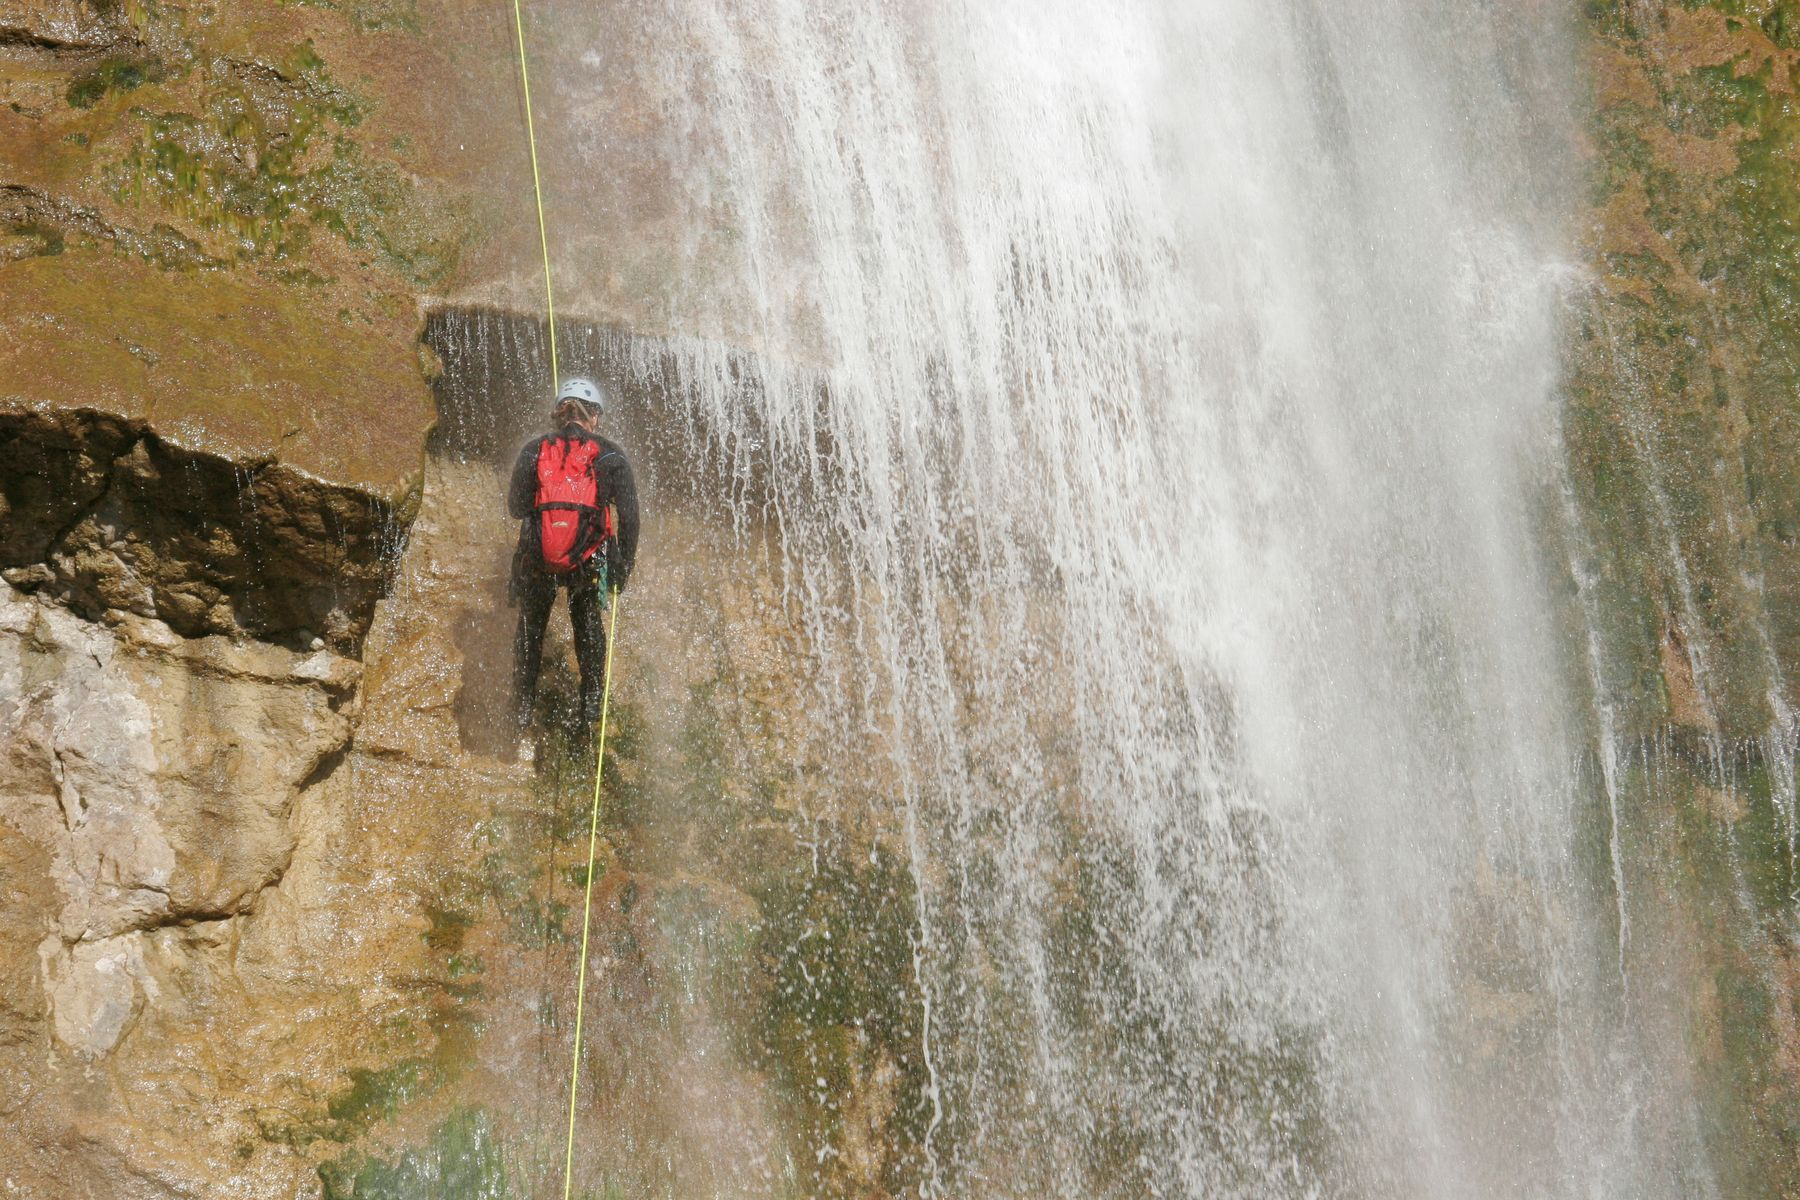 Canyoning involves climbing up steep gorges and waterfalls